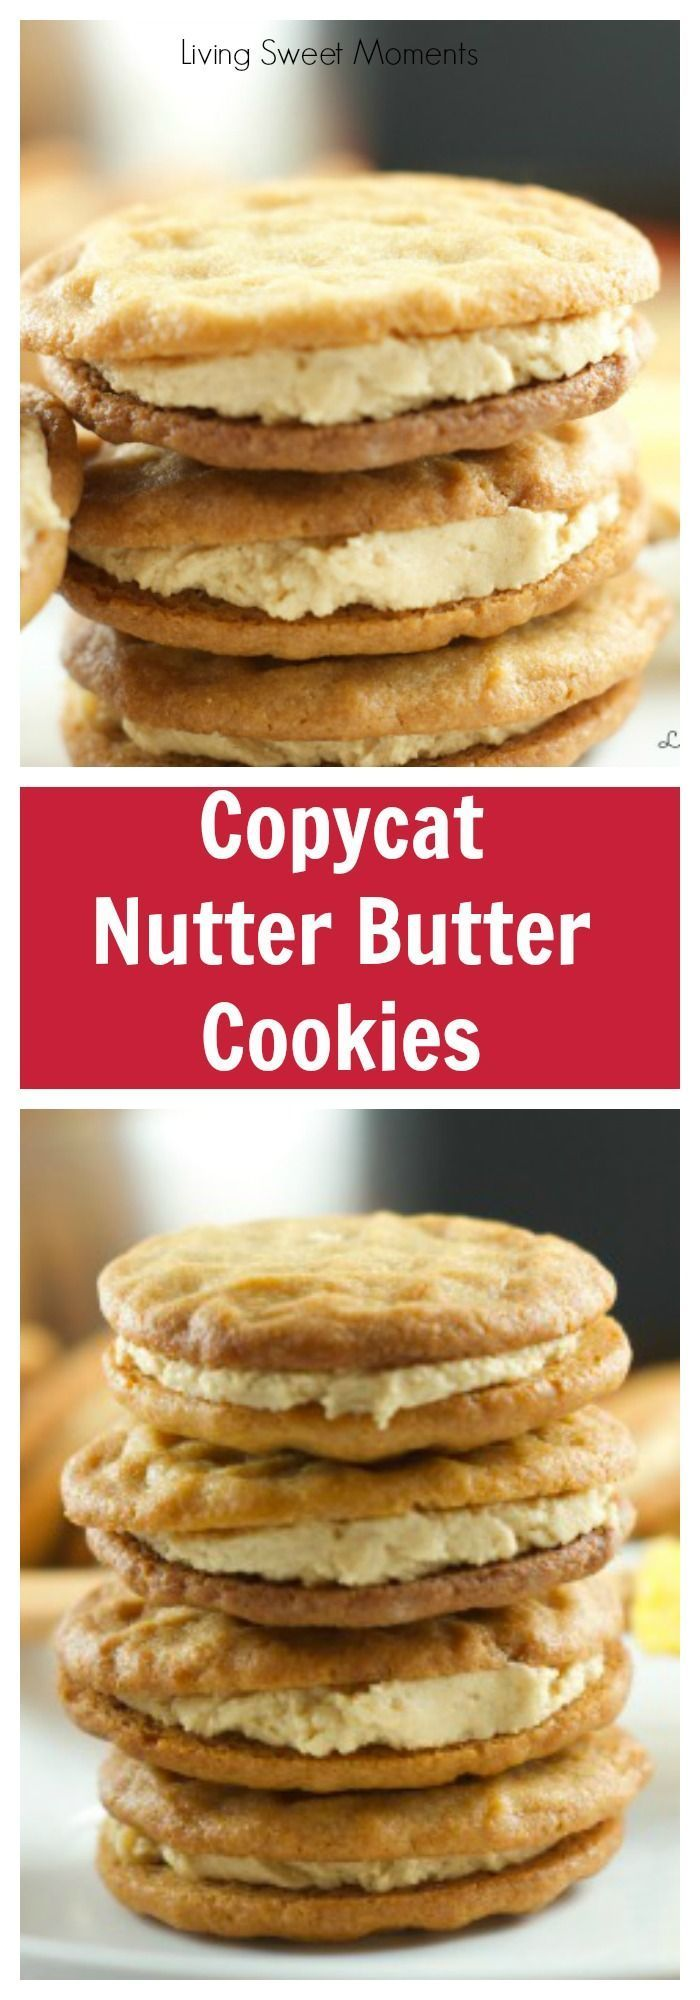 Copycat Nutter Butter Cookies - these homemade peanut butter cookies filled with delicious creamy peanut frosting are more delicious than the original kind. More copycat cookie recipes at http://livingsweetmoments.com via @Livingsmoments